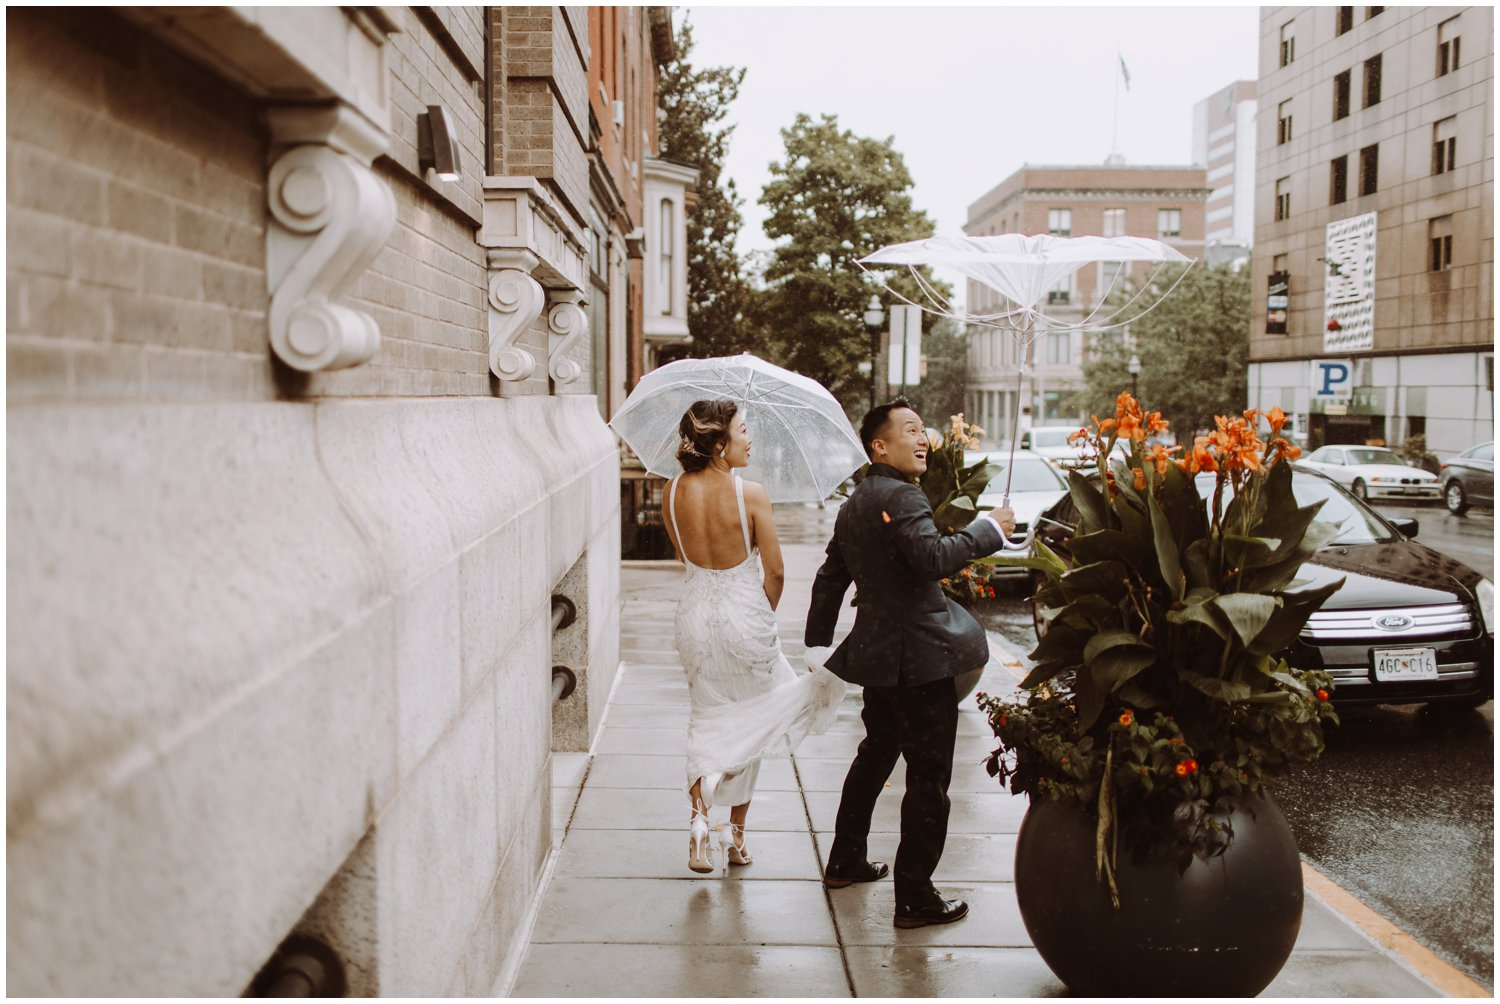 Peabody Library Wedding | Hotel Revival Baltimore Wedding | Art Deco Wedding | Baltimore City Wedding | Kate Ann Photography | Rainy Wedding Day Portraits